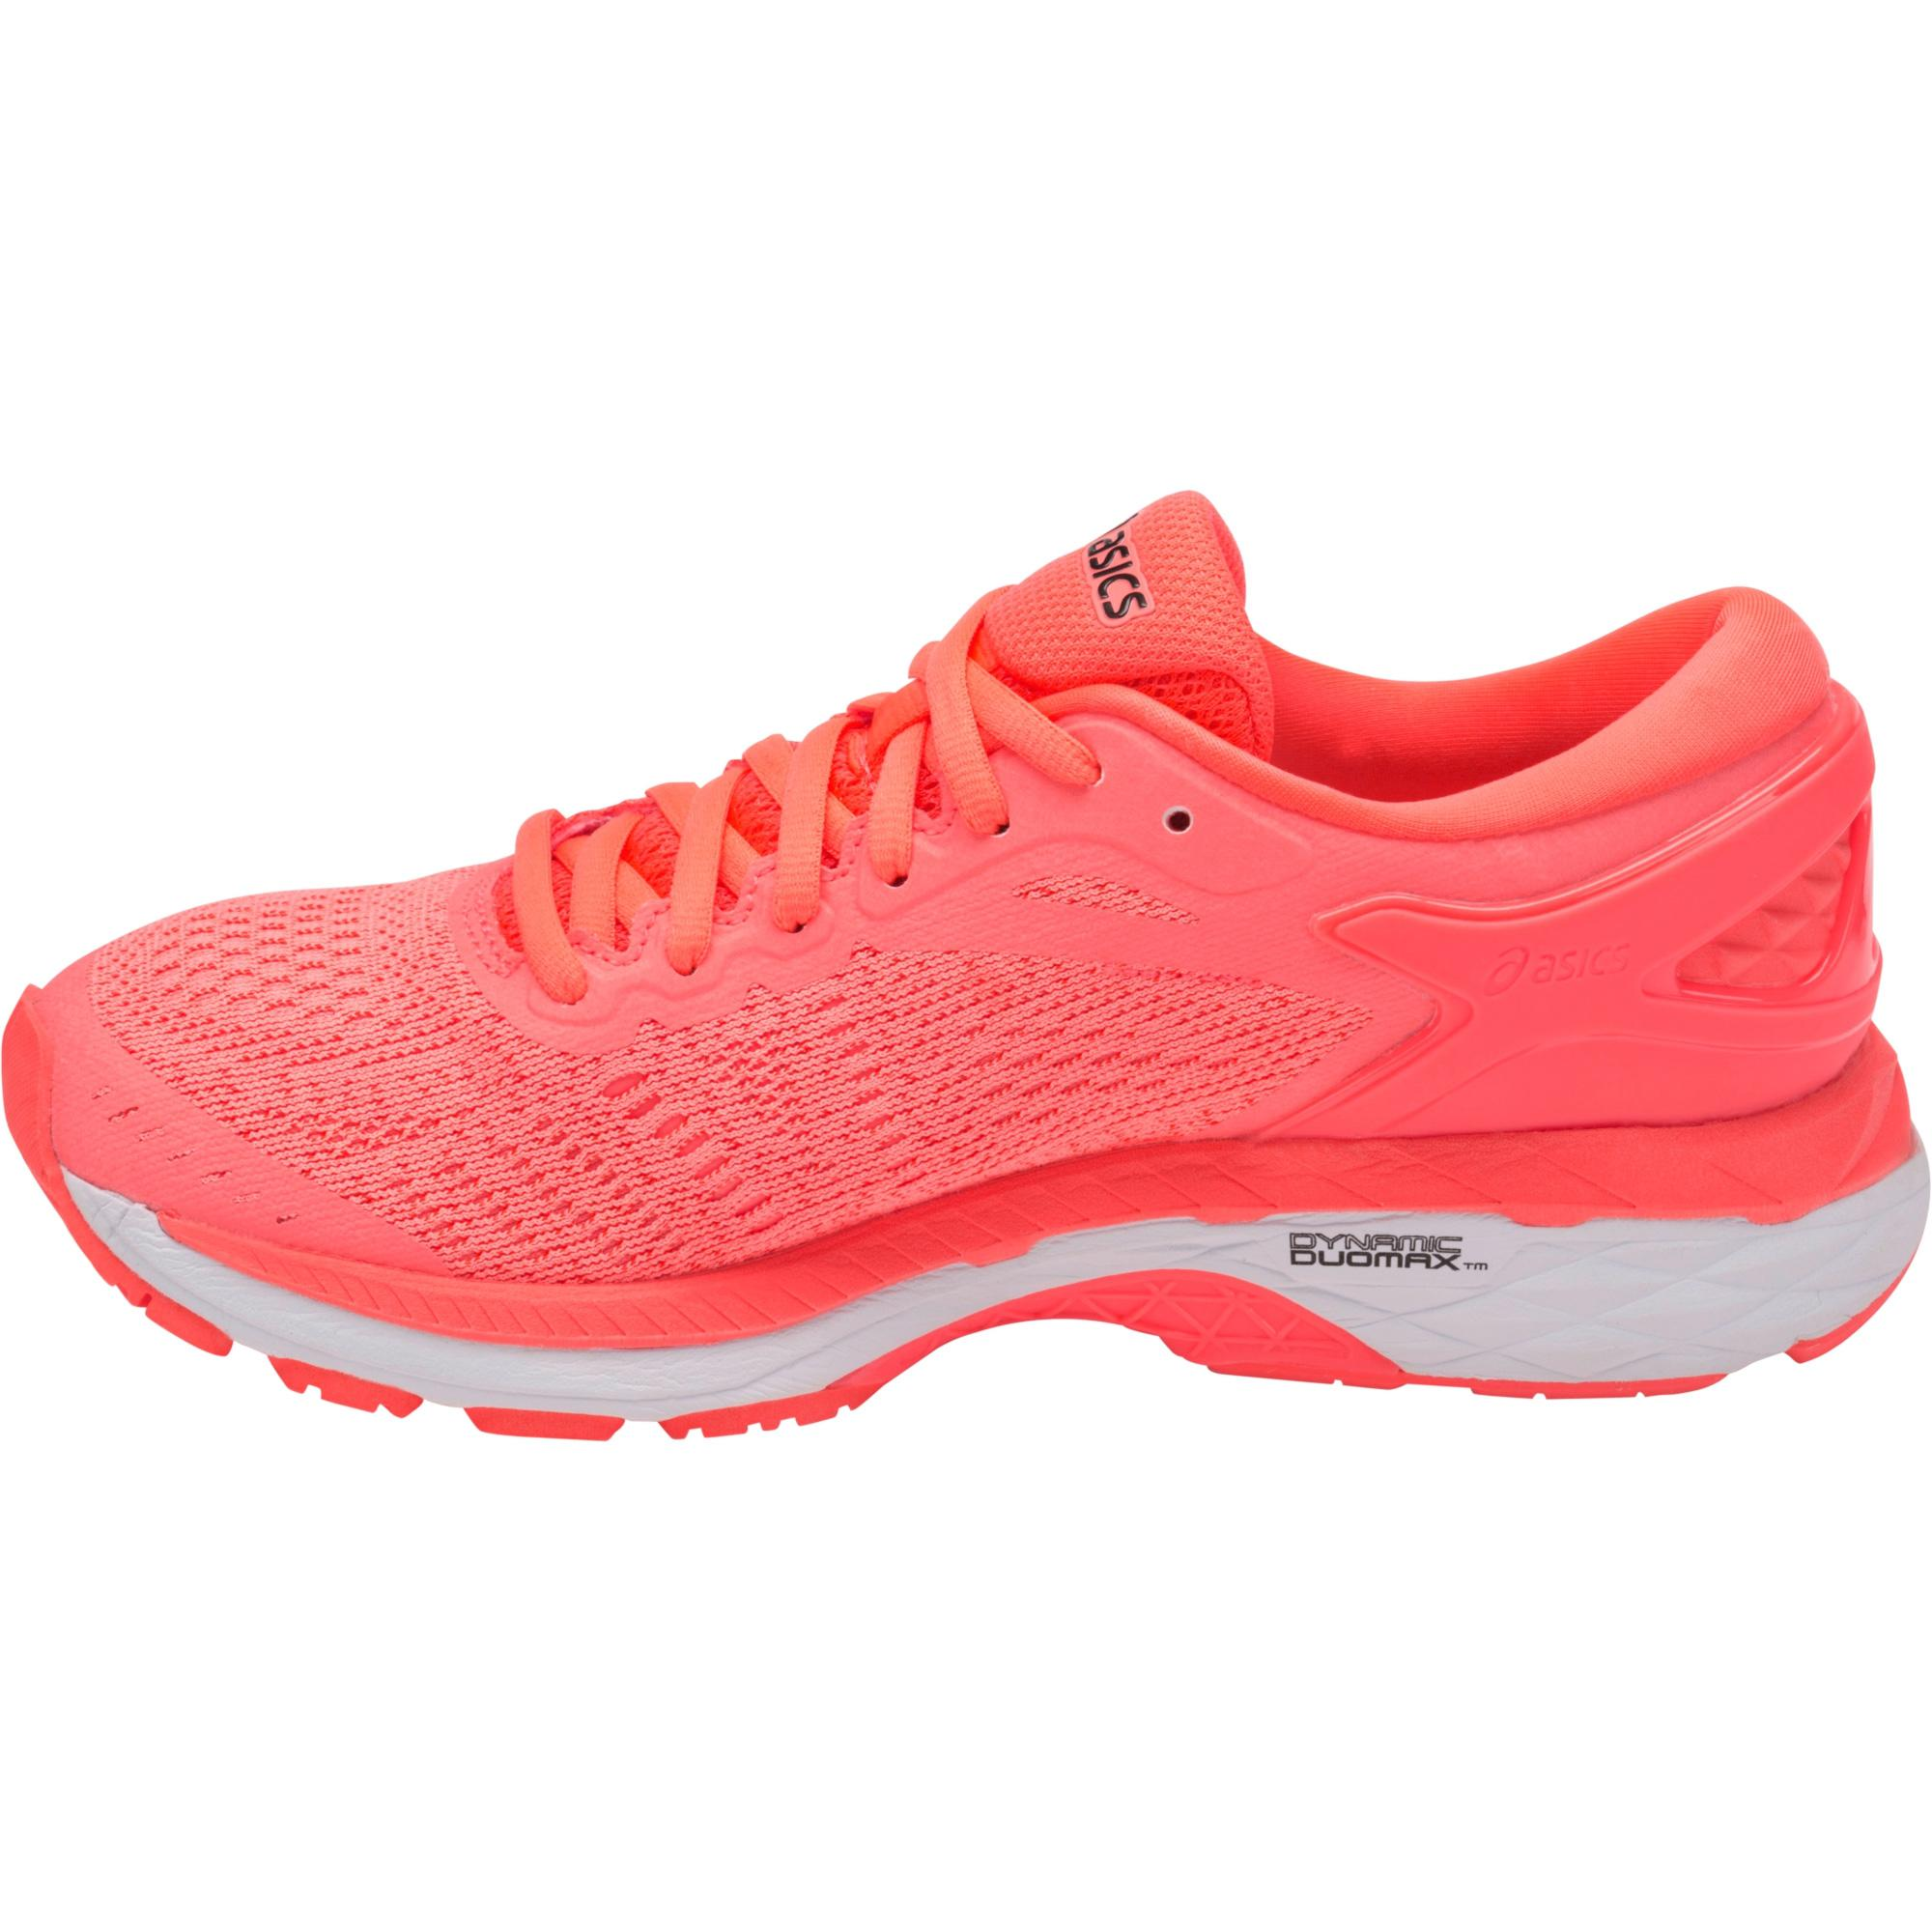 Asics Coral GEL Kayano Flash Asics 24 Chaussures de course Flash Coral 83a2289 - www.rogerschlueter.site